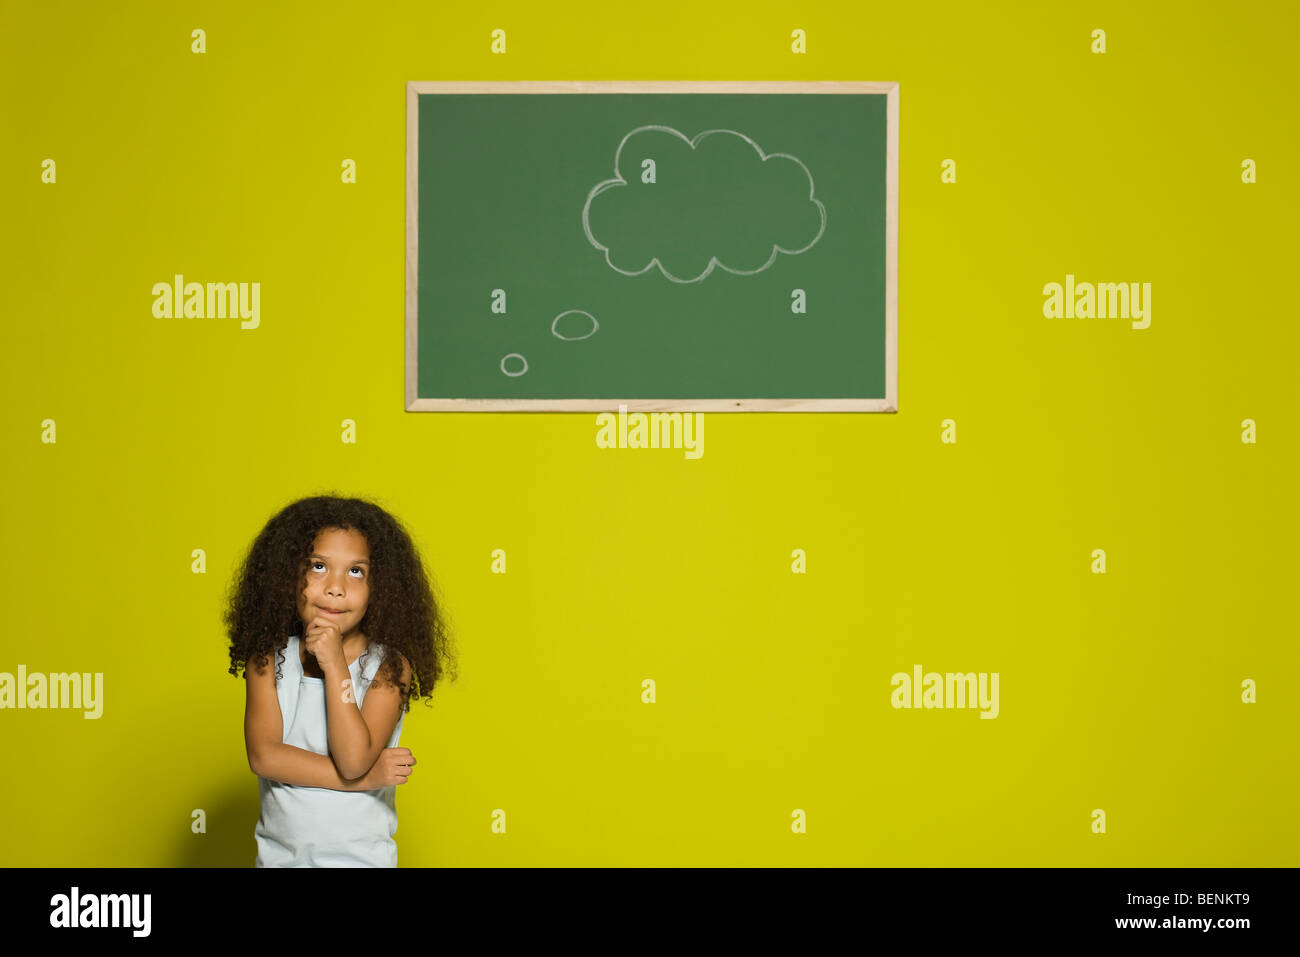 Little girl thinking, empty thought bubble on chalkboard overhead - Stock Image